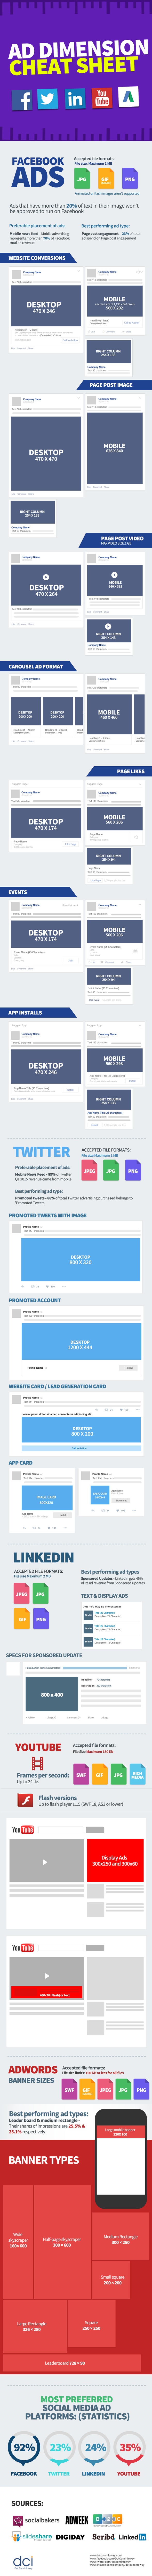 The Best Ad Dimension Cheat Sheet for Facebook, Google Adwords, Twitter and LinkedIn